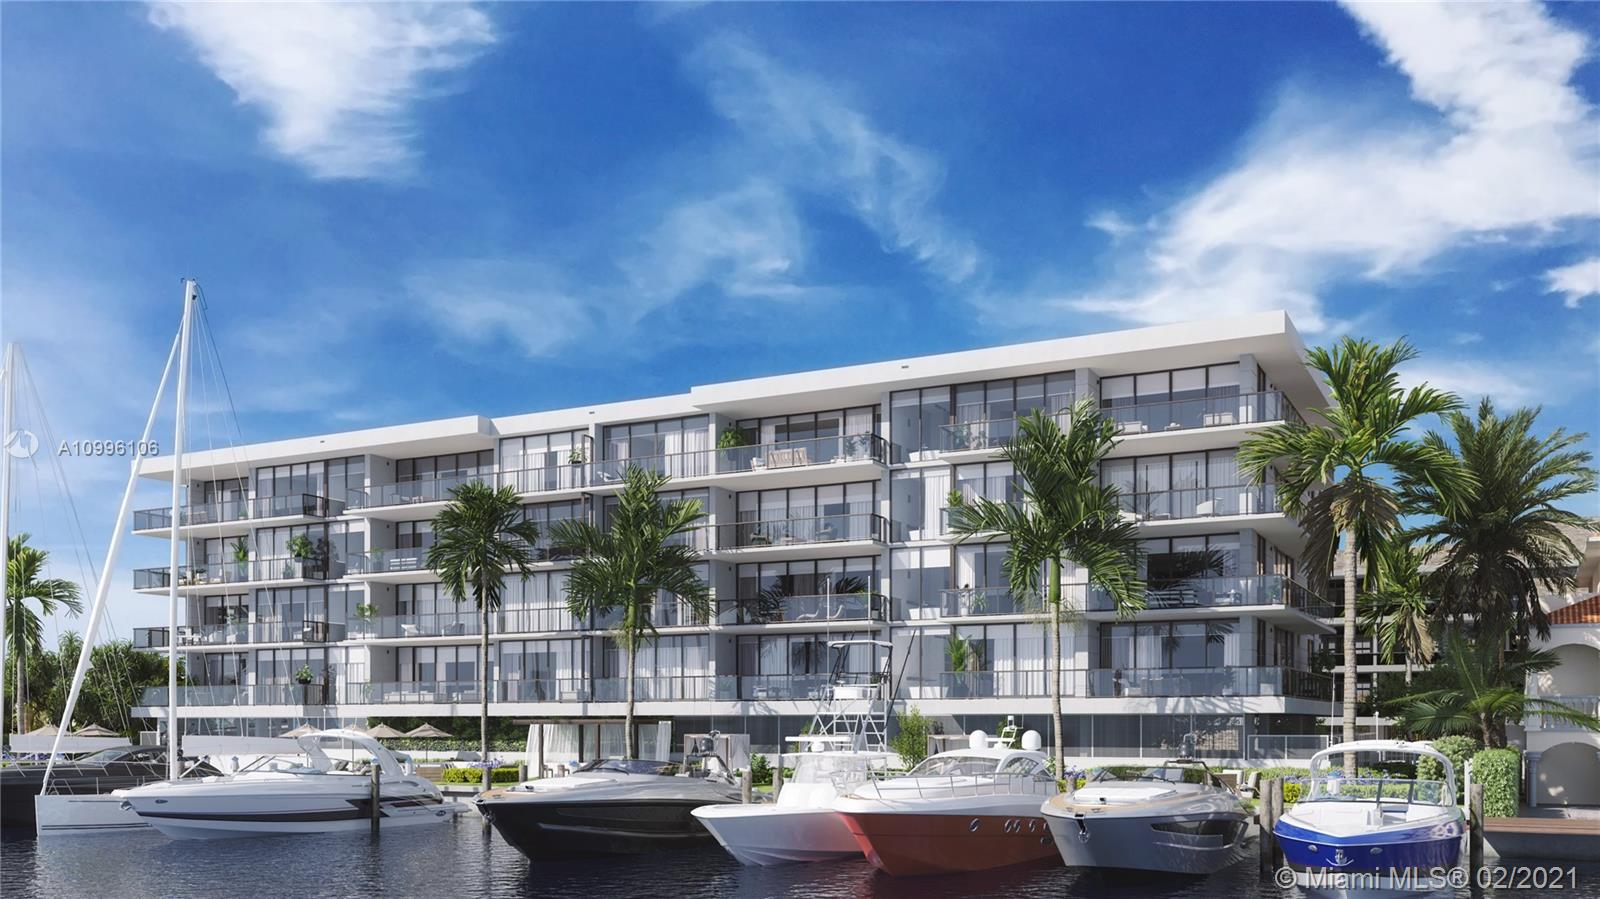 160 Marina Bay - Fort Lauderdale's most exclusive, ultra-luxurious boutique building. 5-stories & 16 striking three bedroom finished residences w/ over 3,300 Total SF including expansive waterfront terraces. Centrally located within walking distance of Las Olas Blvd & the beach: the perfect blend of Beach & City! 10' ceilings, private elevator lobby to each residence, Italian cabinetry w/ high-end appliances, built-in bar in dining room, SMART HOME: control lights, front door, shades & even master shower by voice control! Private Marina w/ 14 boat slips, pool overlooking canal w/ cabana & BBQ area, self-servicing package lockers & more! Strategically located near the east-facing far end of Isle of Venice Dr. for added privacy & stunning waterway views. Slated completion EARLY 2022!